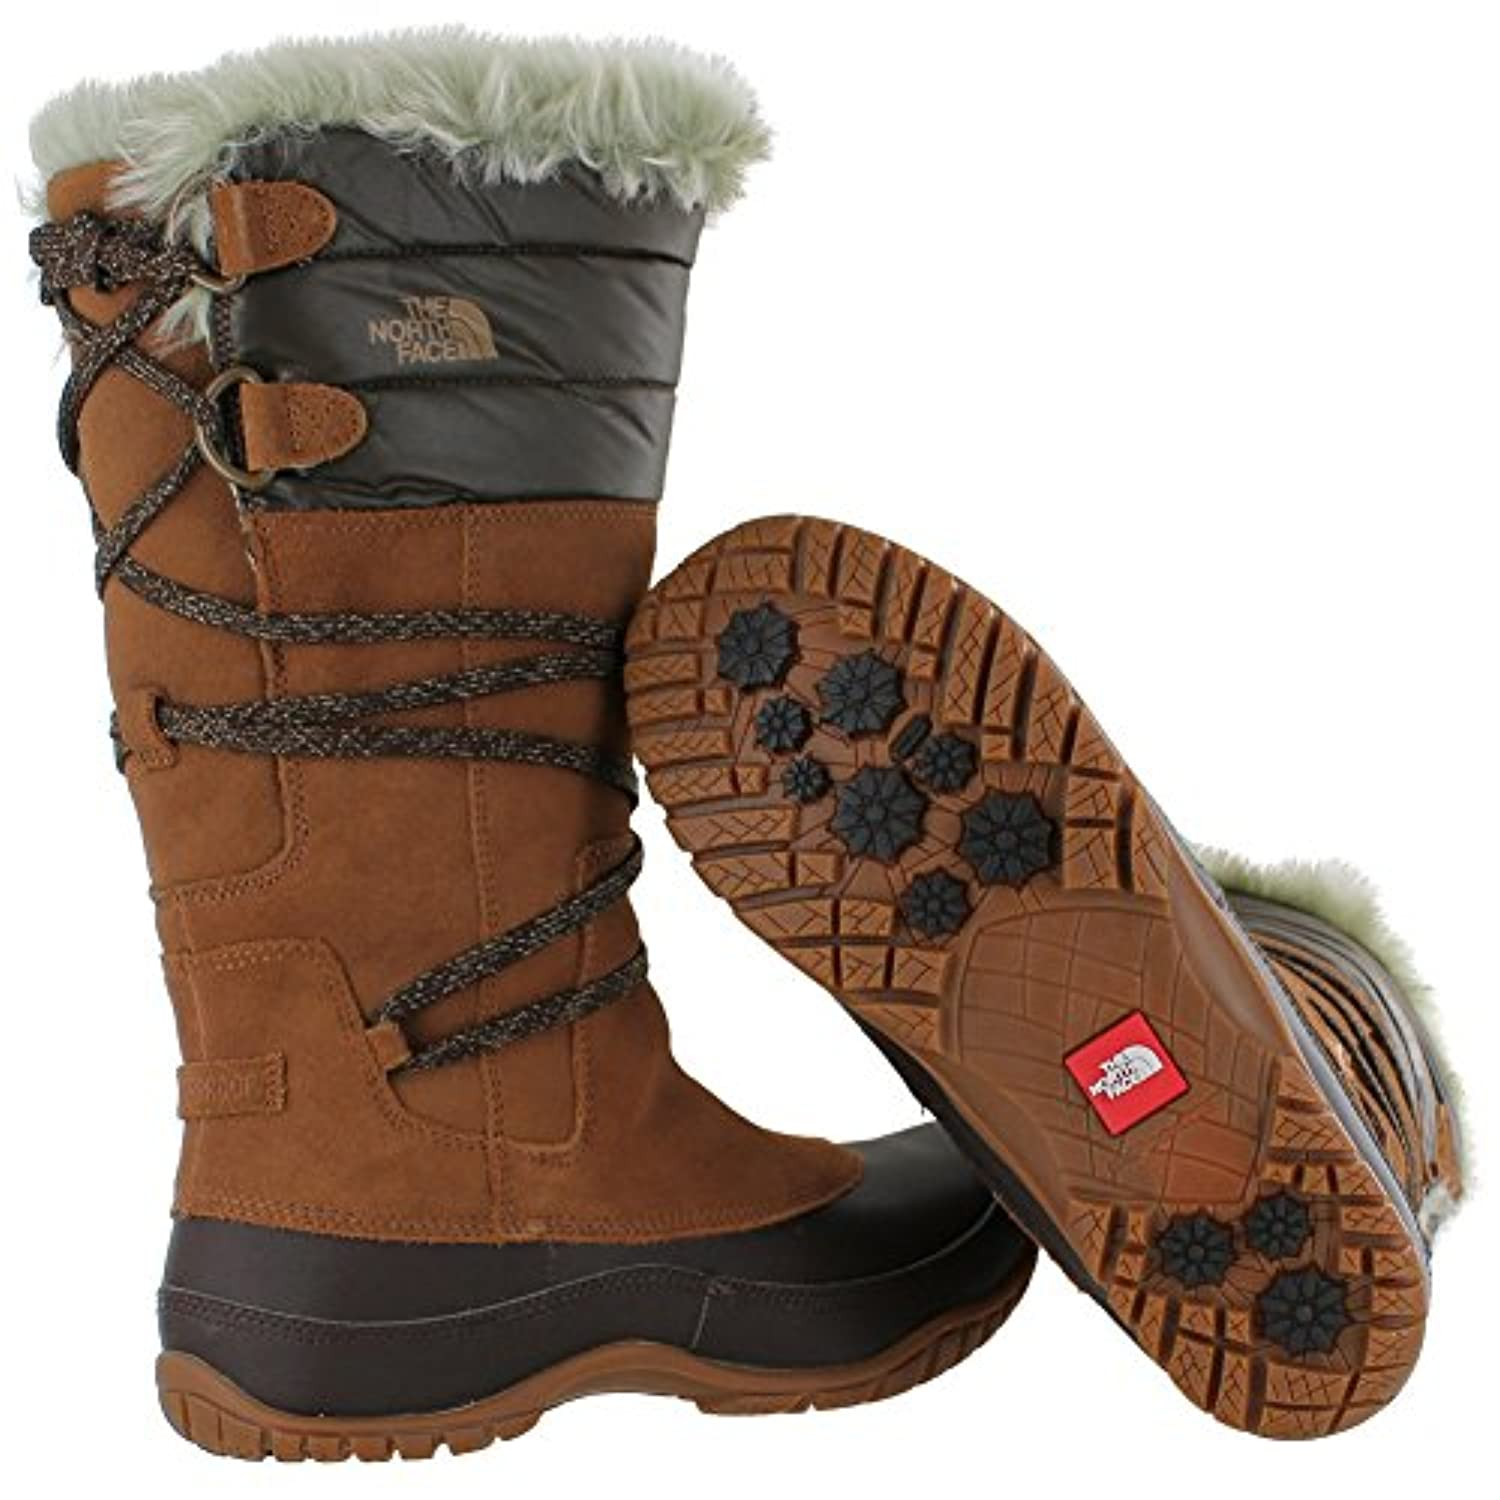 THE NORTH FACE JOZIE PURNA DACHSHUND BRN/SHINY DEMIT BRN WOMENS WATERPROOF BOOTS Size 7M